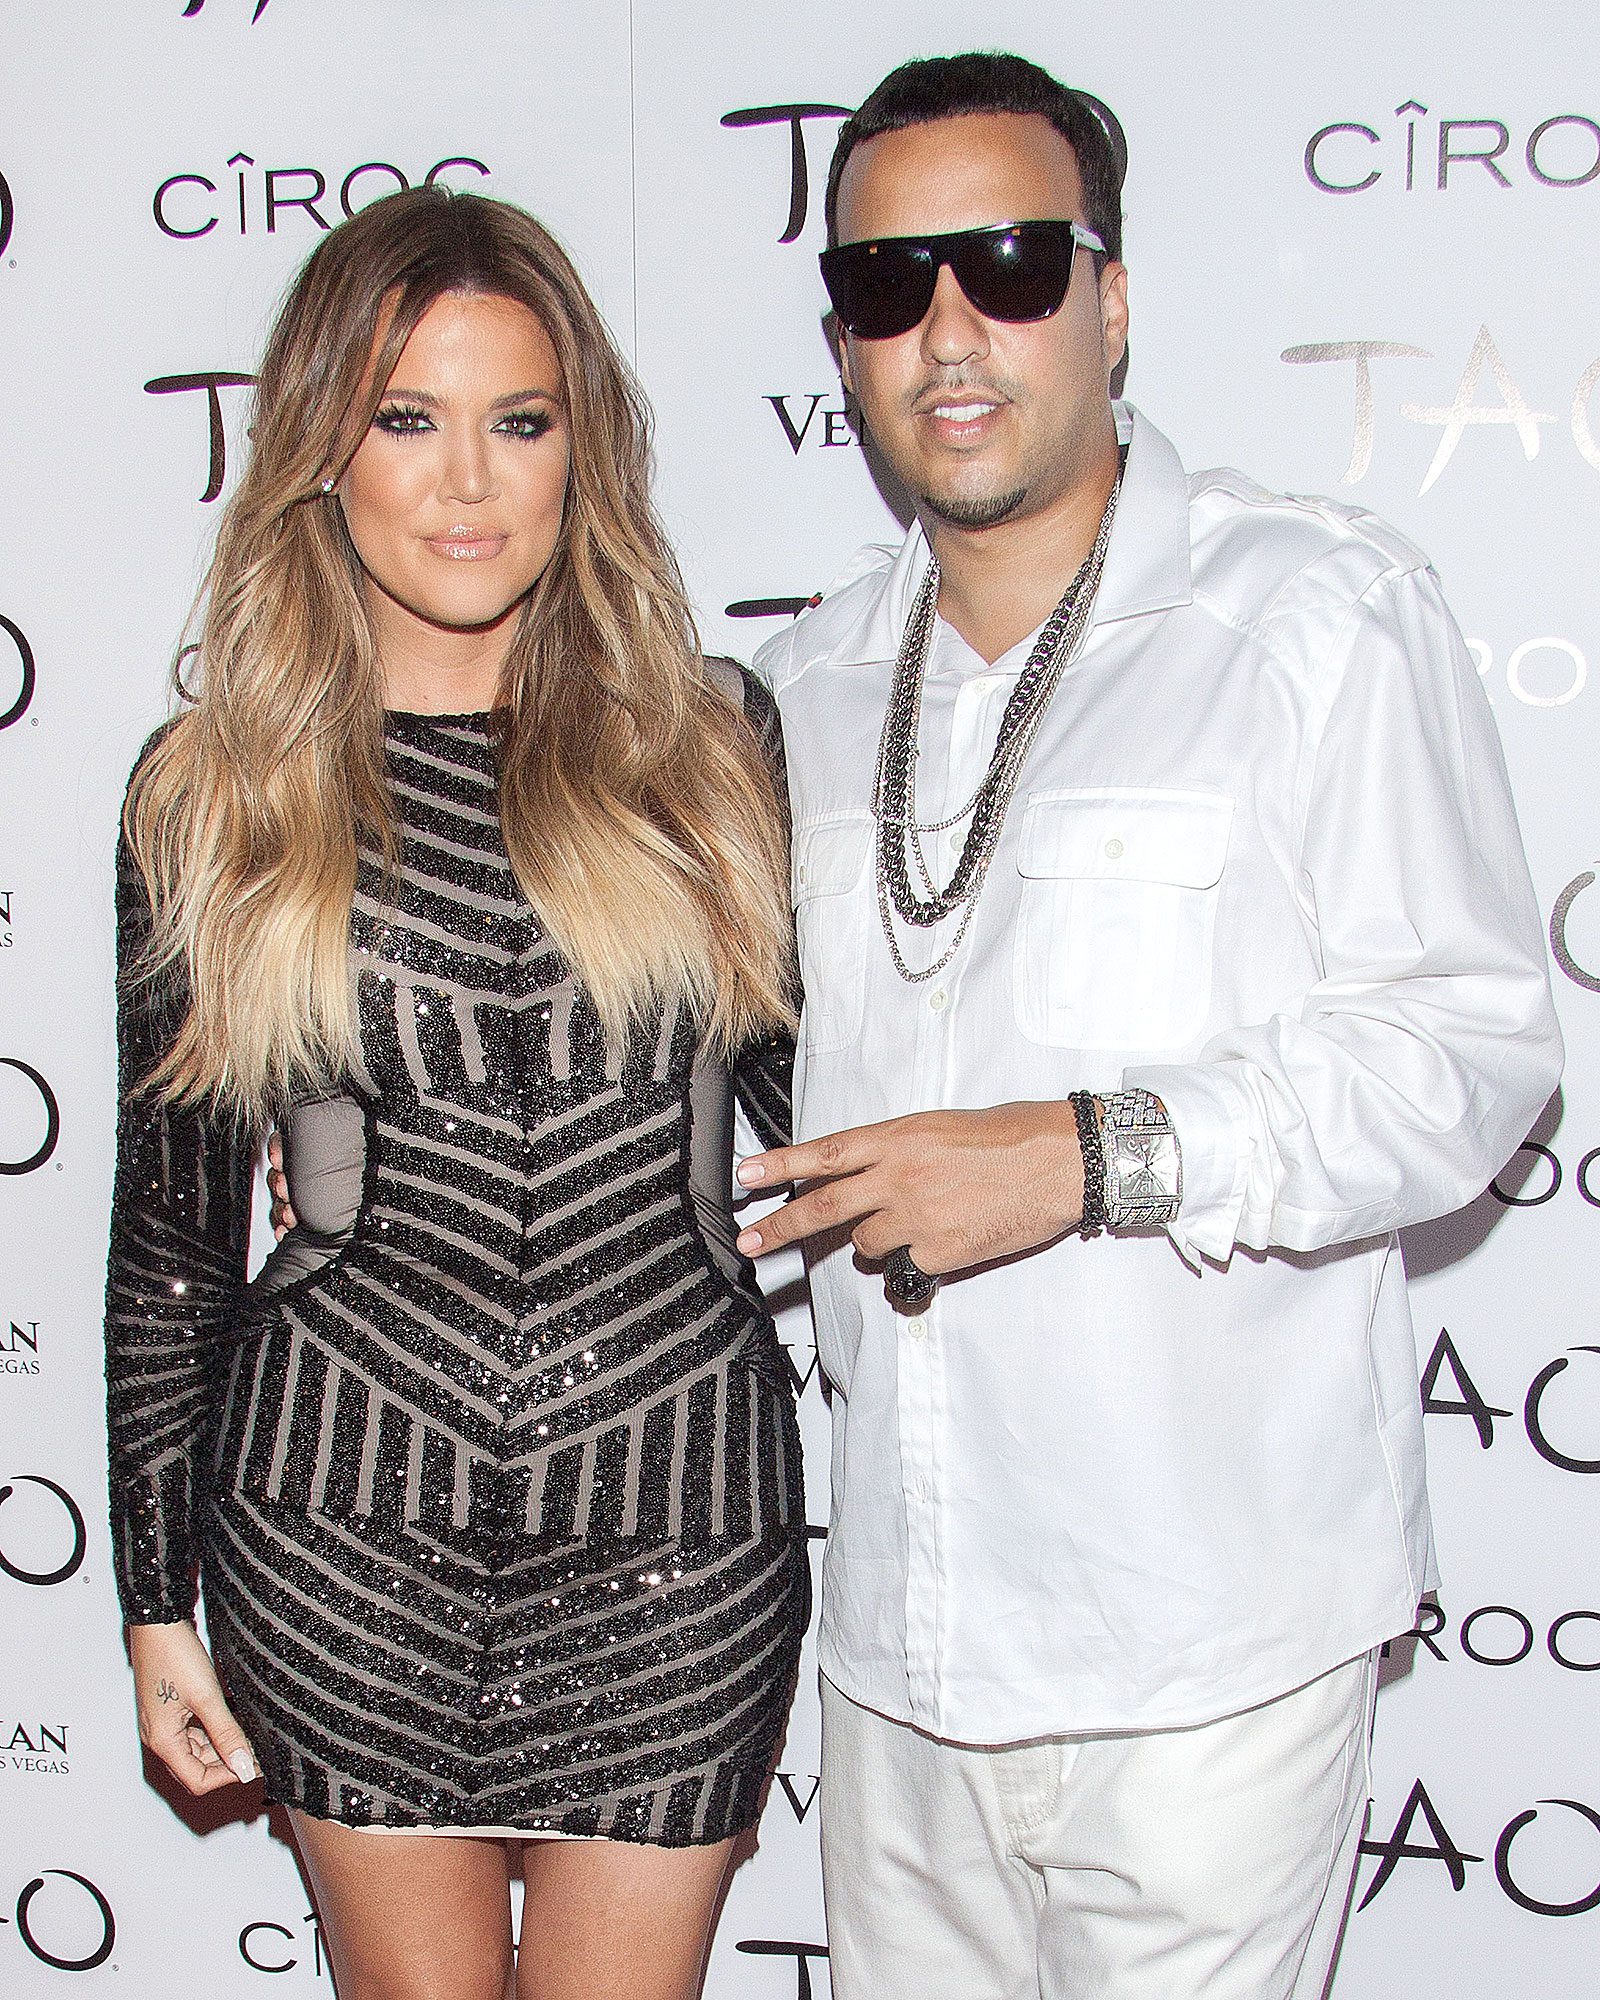 Khloe Kardashian and French Montana celebrate Fourth of July weekend at TAO Nightclub in Las Vegas